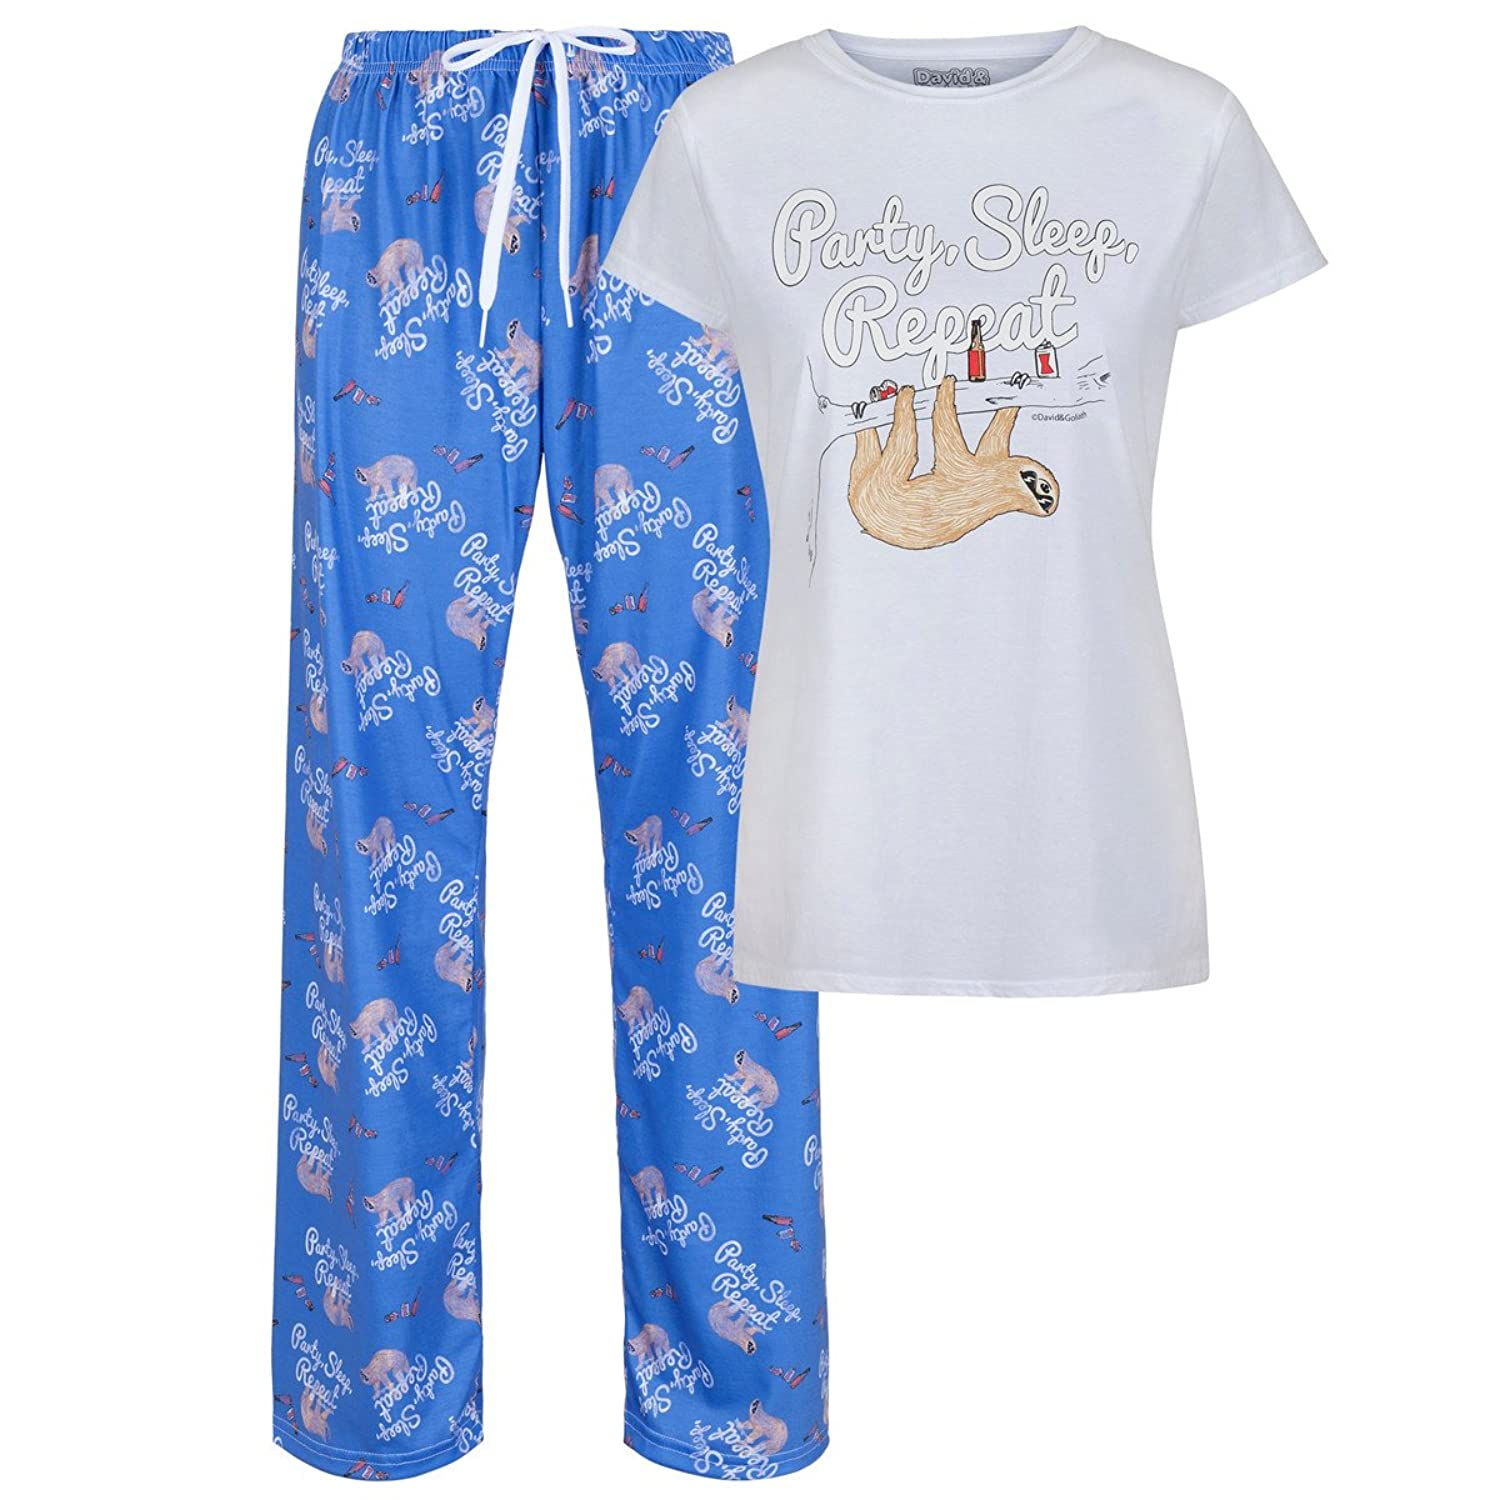 David and Goliath PJ Set - Party, Sleep, Repeat, Sloth - White